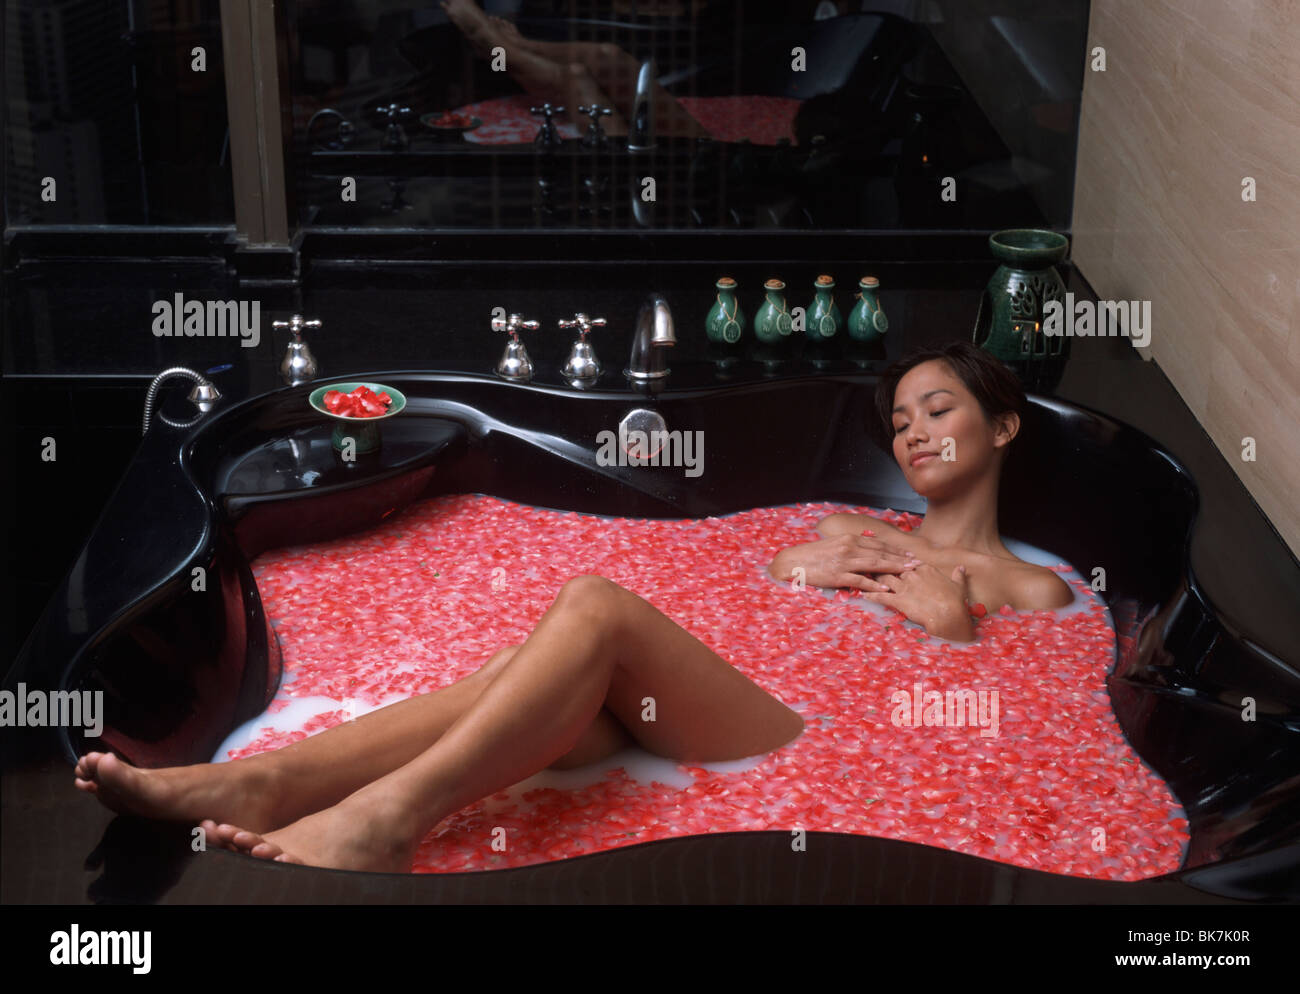 Young woman relaxing in a flower bath - Stock Image